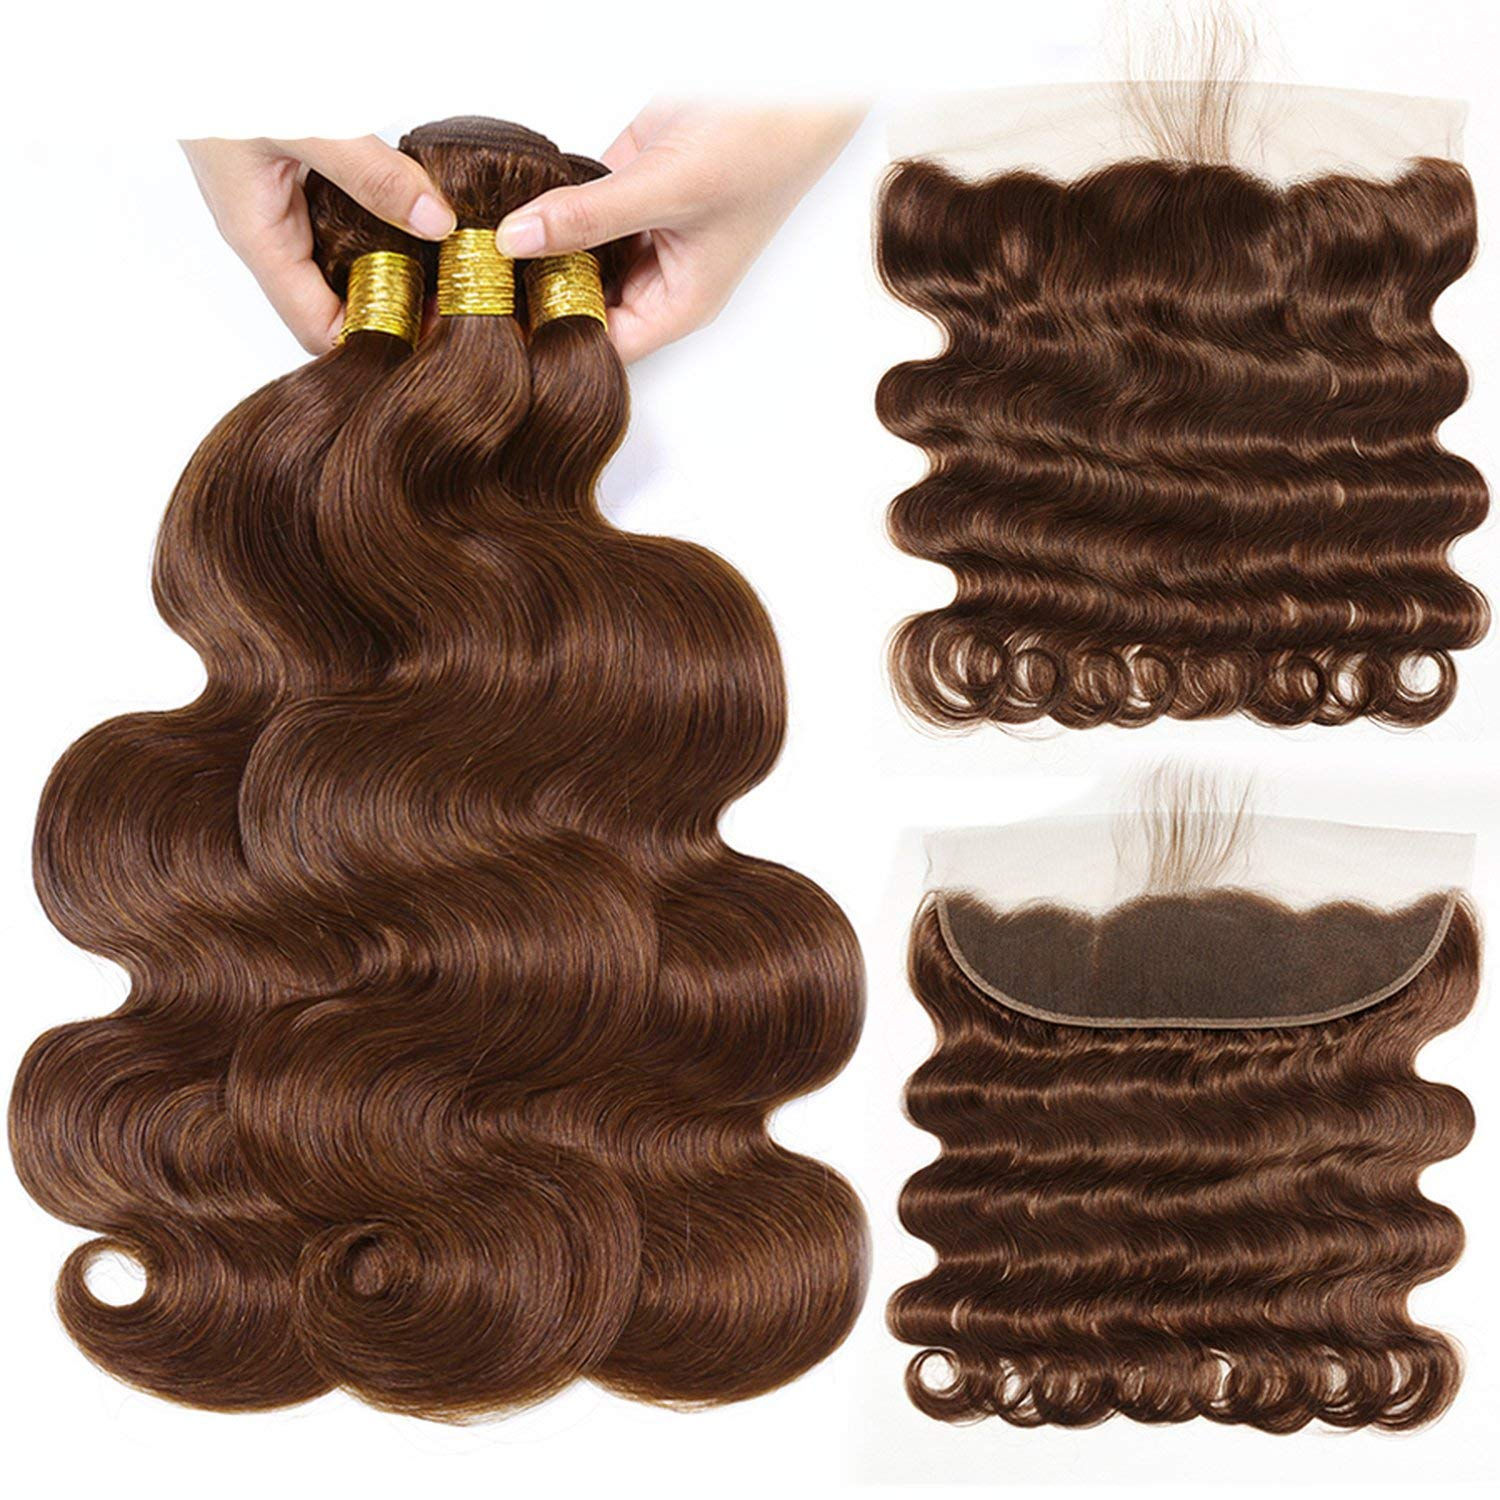 #4 Light Brown Body Wave Hair Bundles With Frontal Brazilian Hair Weave Bundles Human Hair Bundles Romantico NonRemy Hair Extension,14 & 16 & 18 & Closure 12,Light Brown nonremy 81H9ErnWxgL